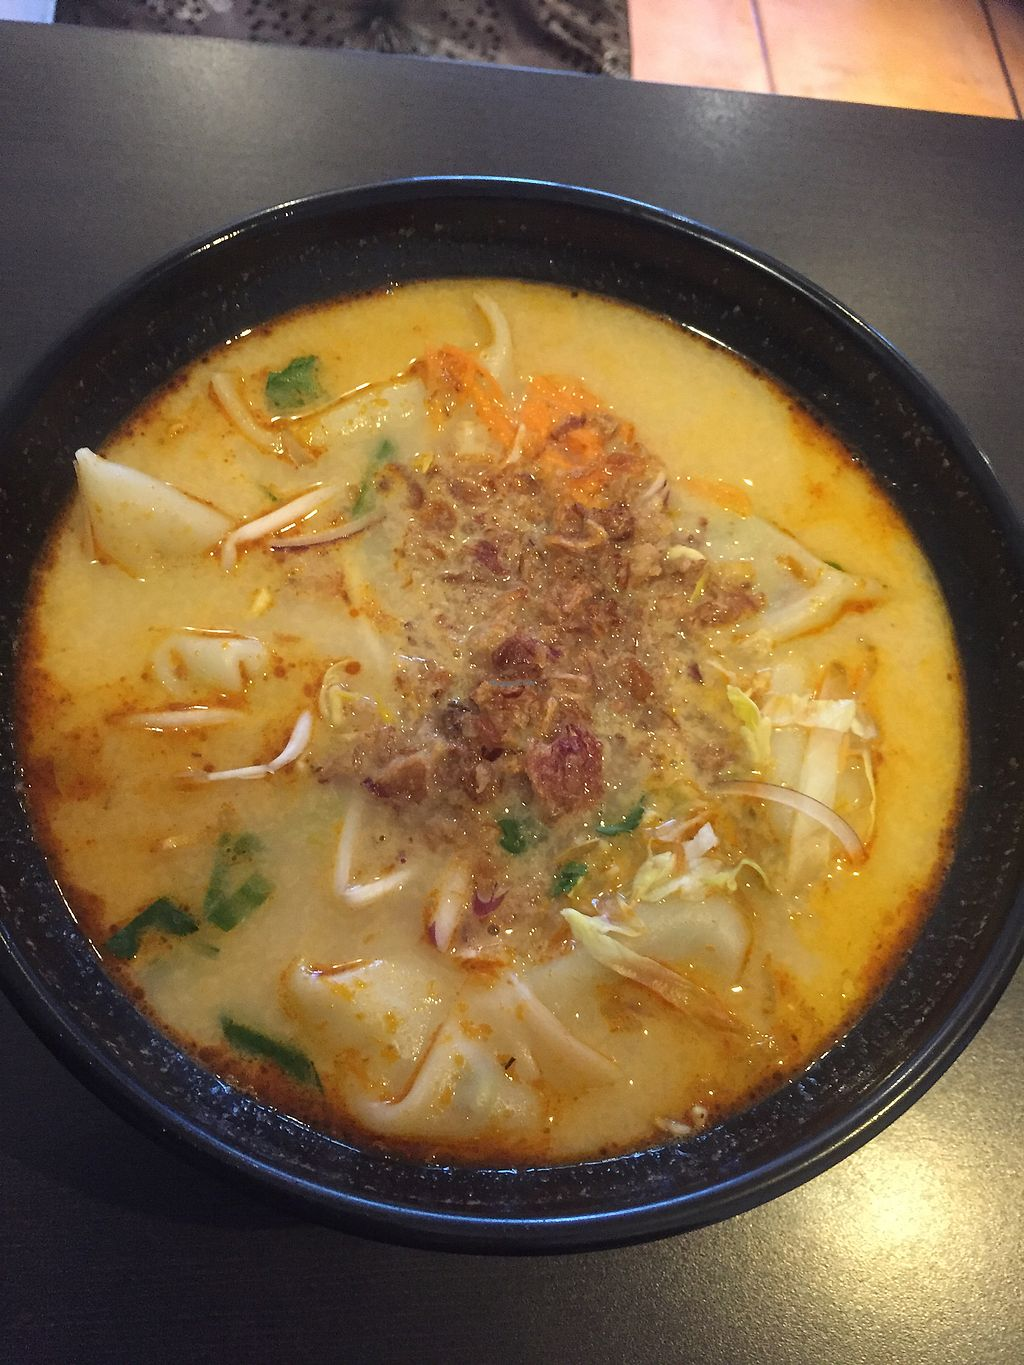 """Photo of Dumpling World  by <a href=""""/members/profile/healthierlaura"""">healthierlaura</a> <br/>the dumplings full of juice from laksa not much veggies inside on them :-( <br/> July 10, 2017  - <a href='/contact/abuse/image/18856/278810'>Report</a>"""